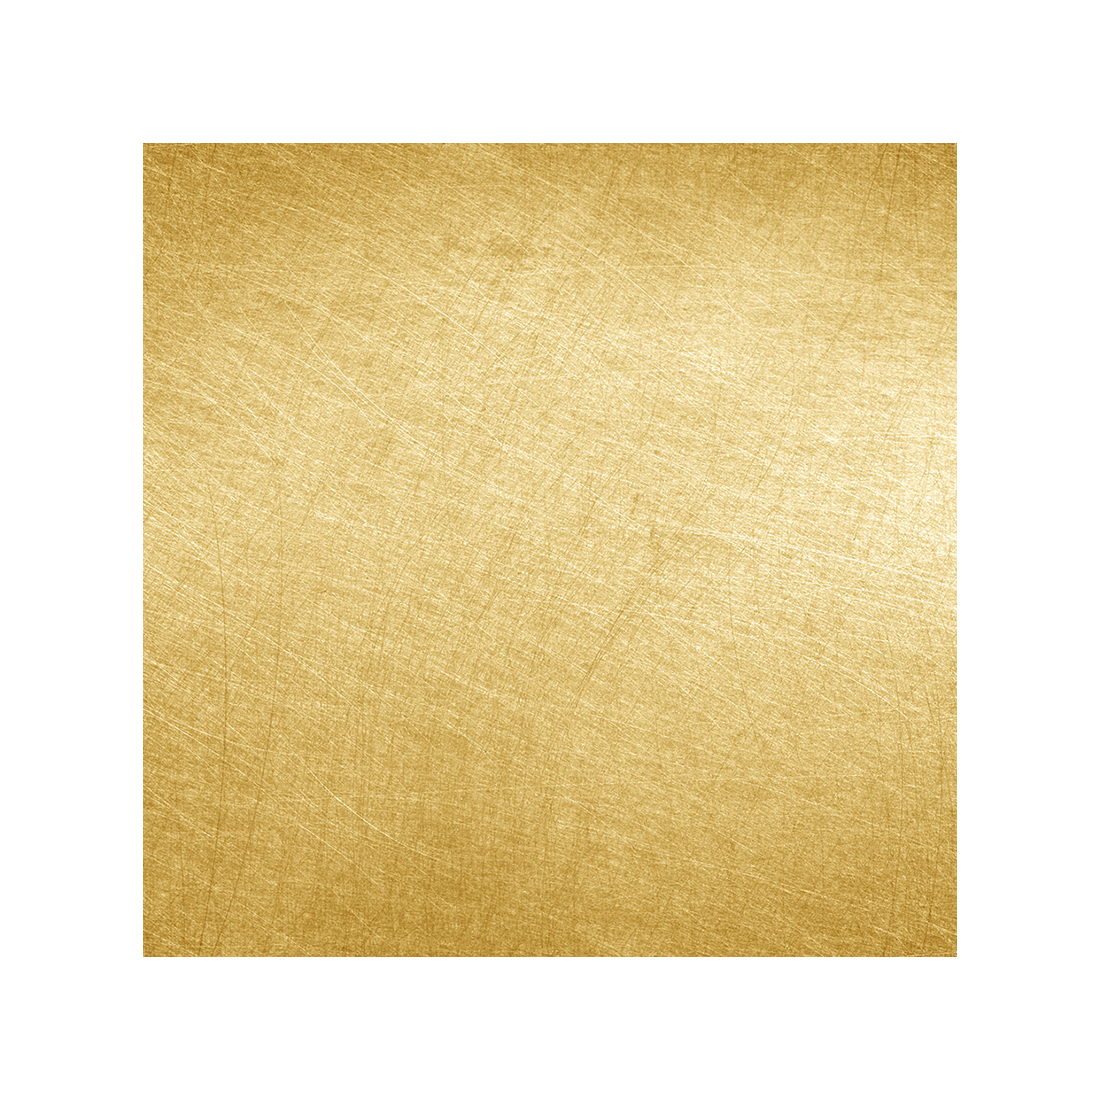 Gold_texture.png